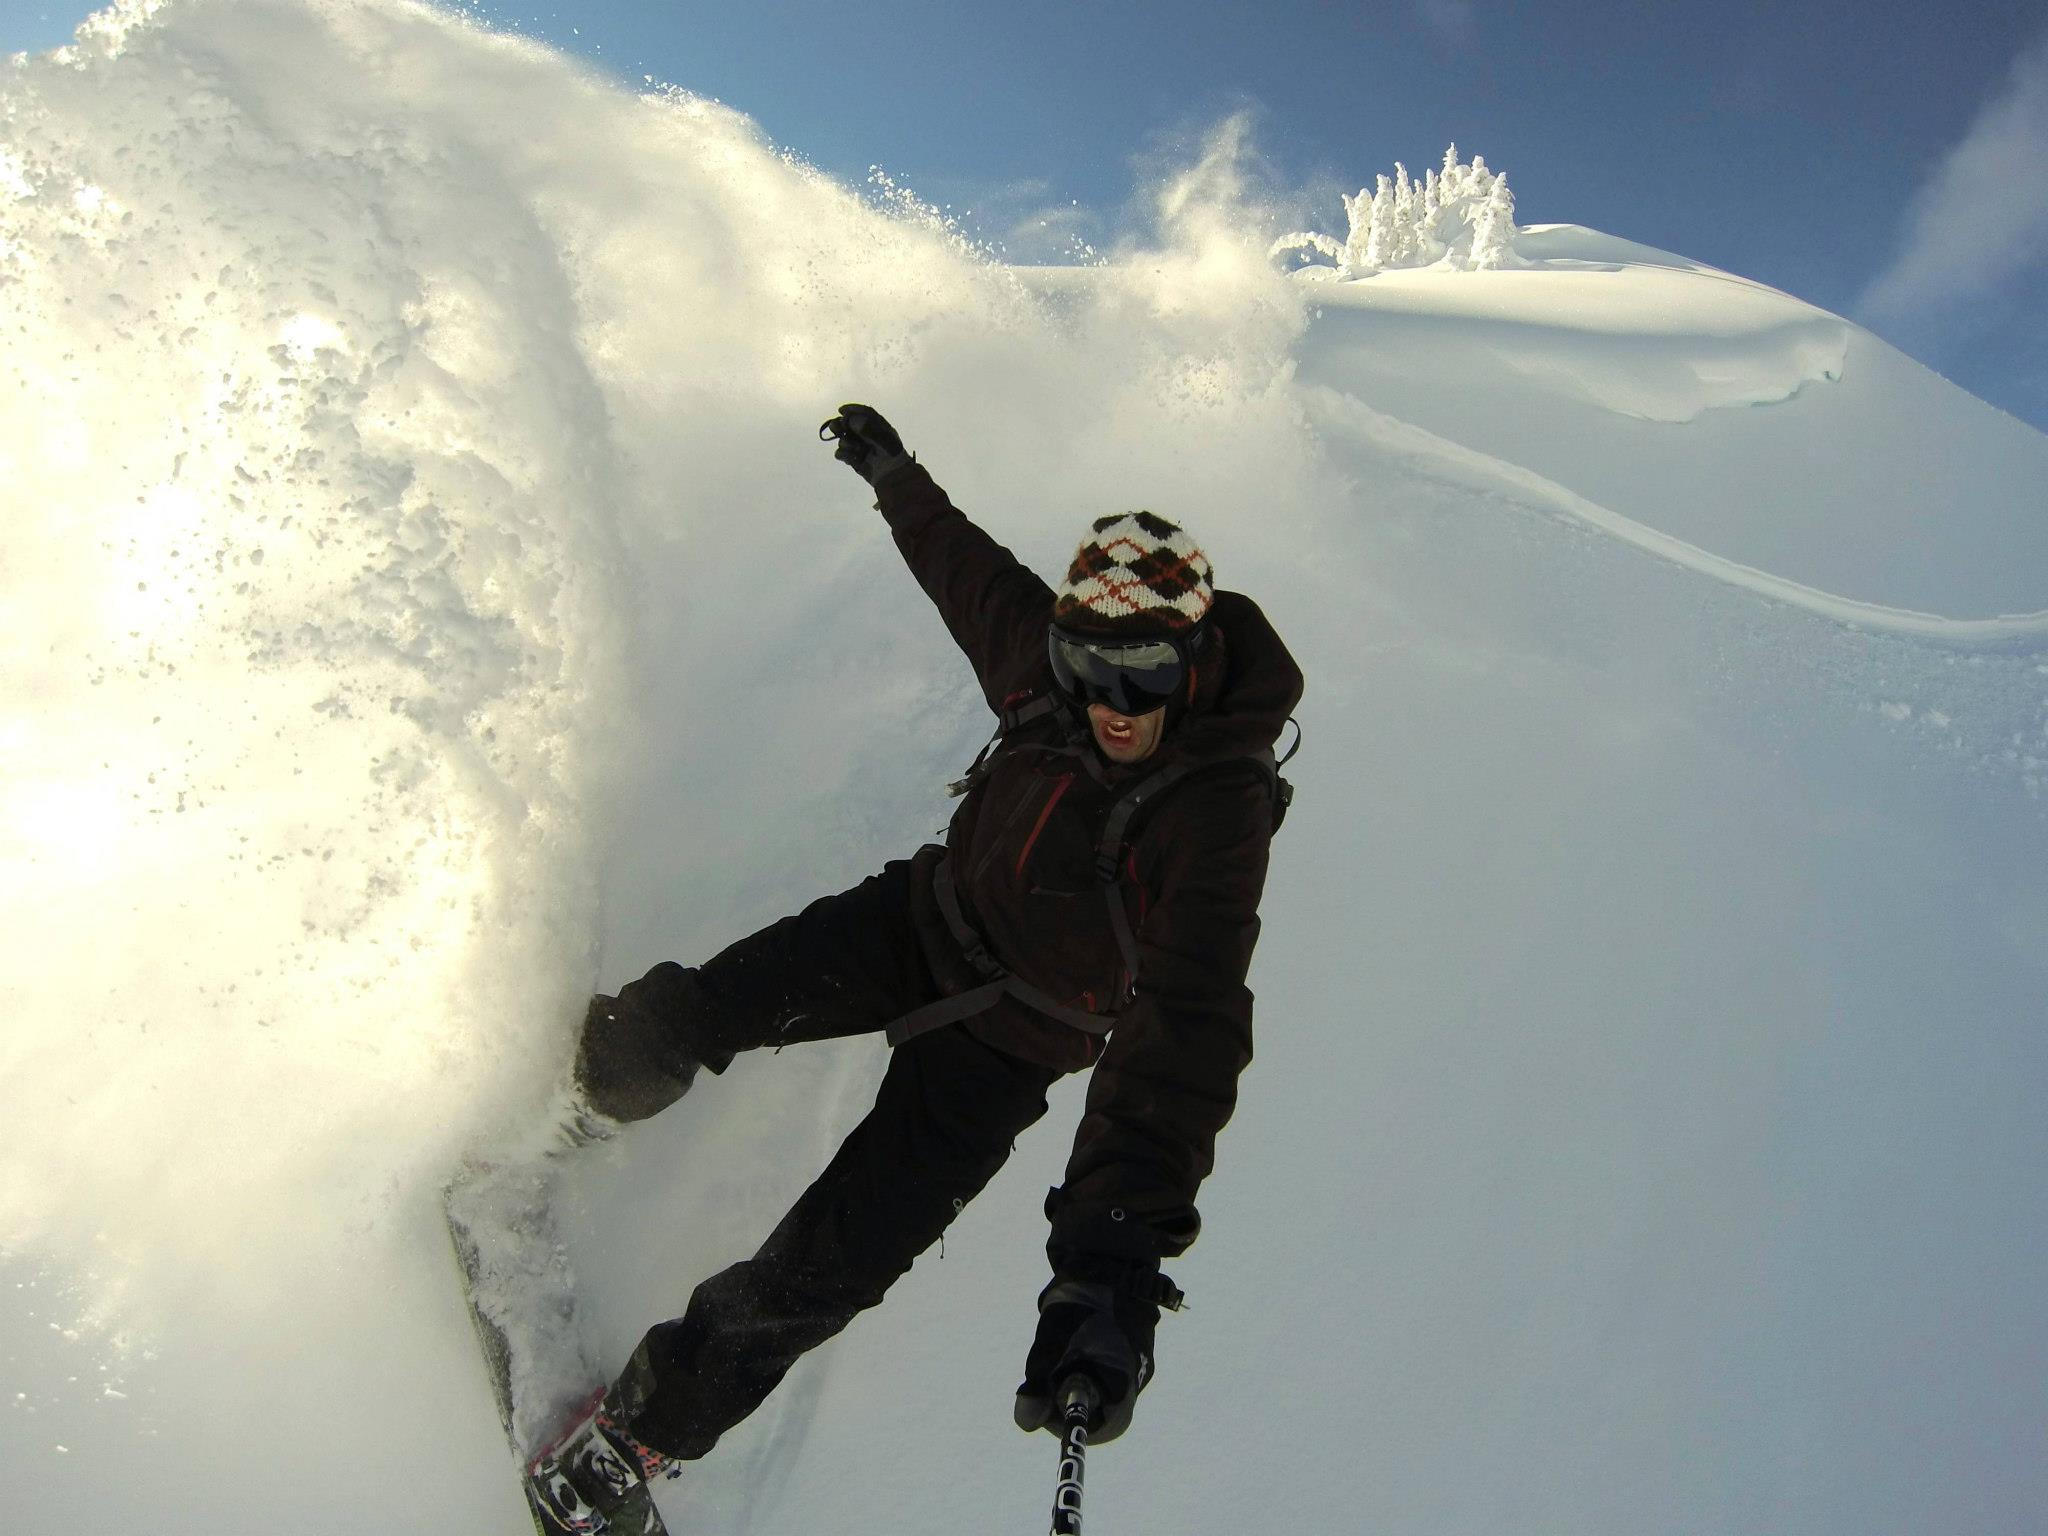 Snowboard Photo of the Day!